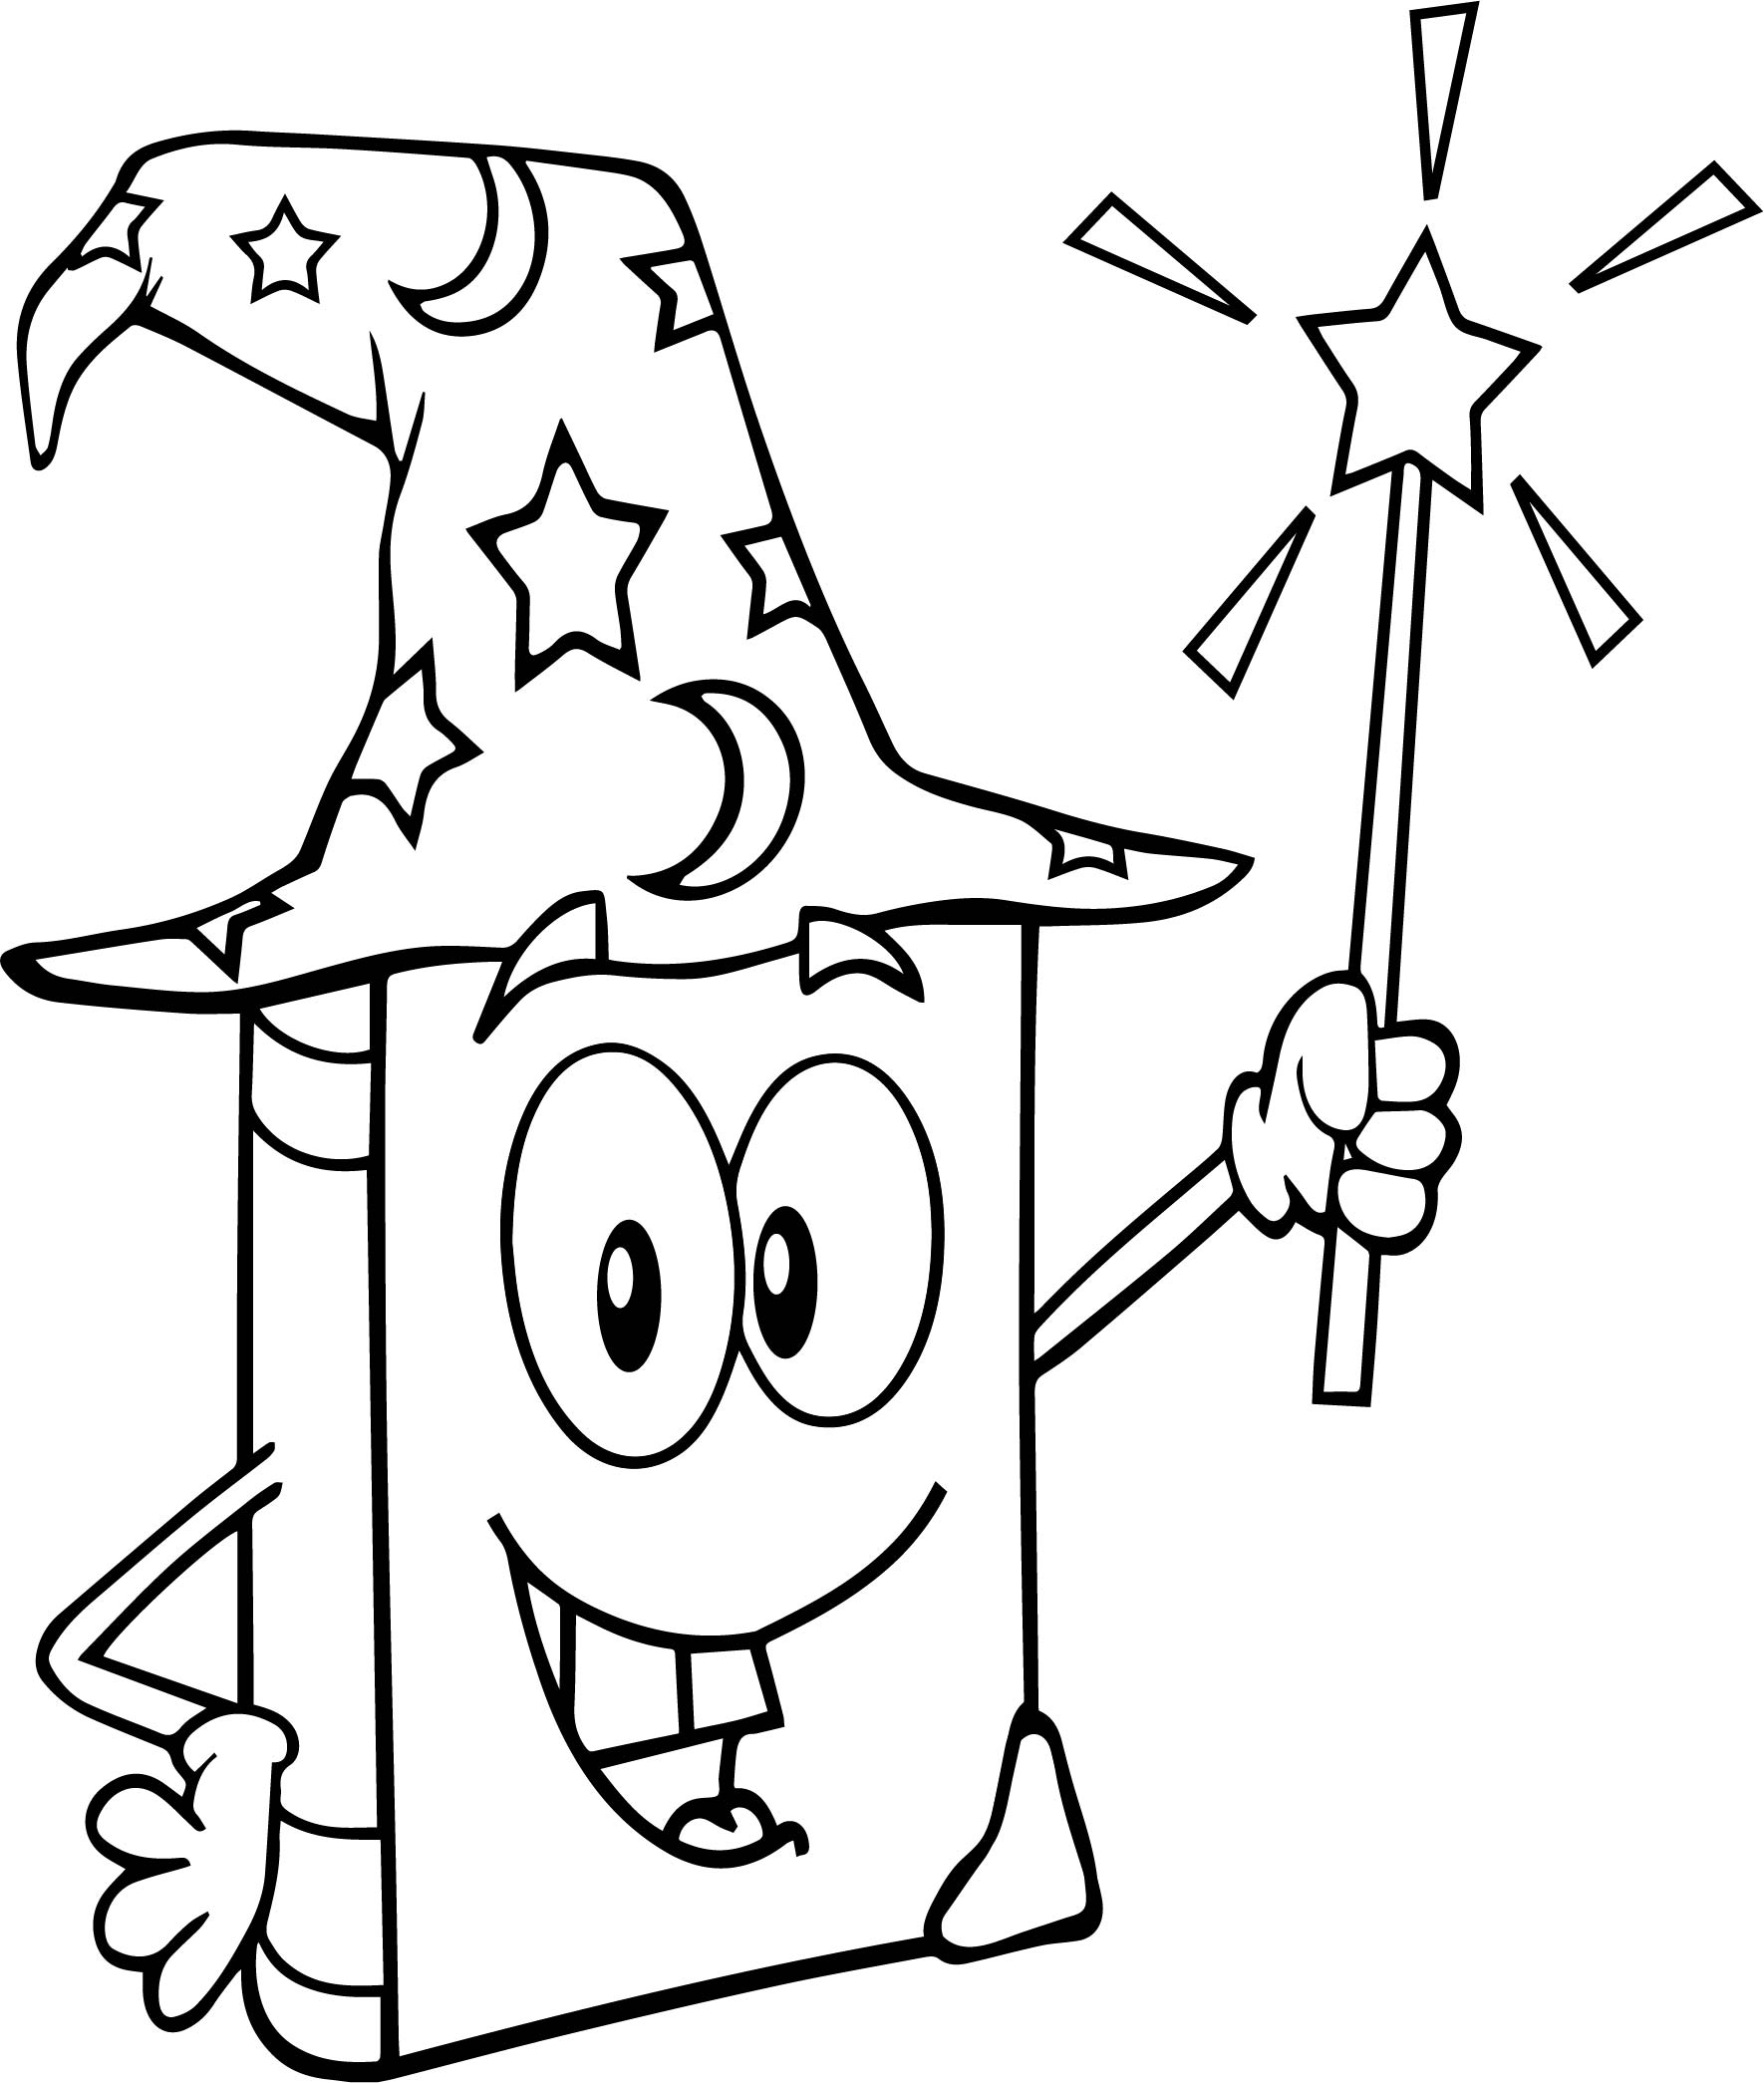 wizard book holding holding magic wand free printable coloring